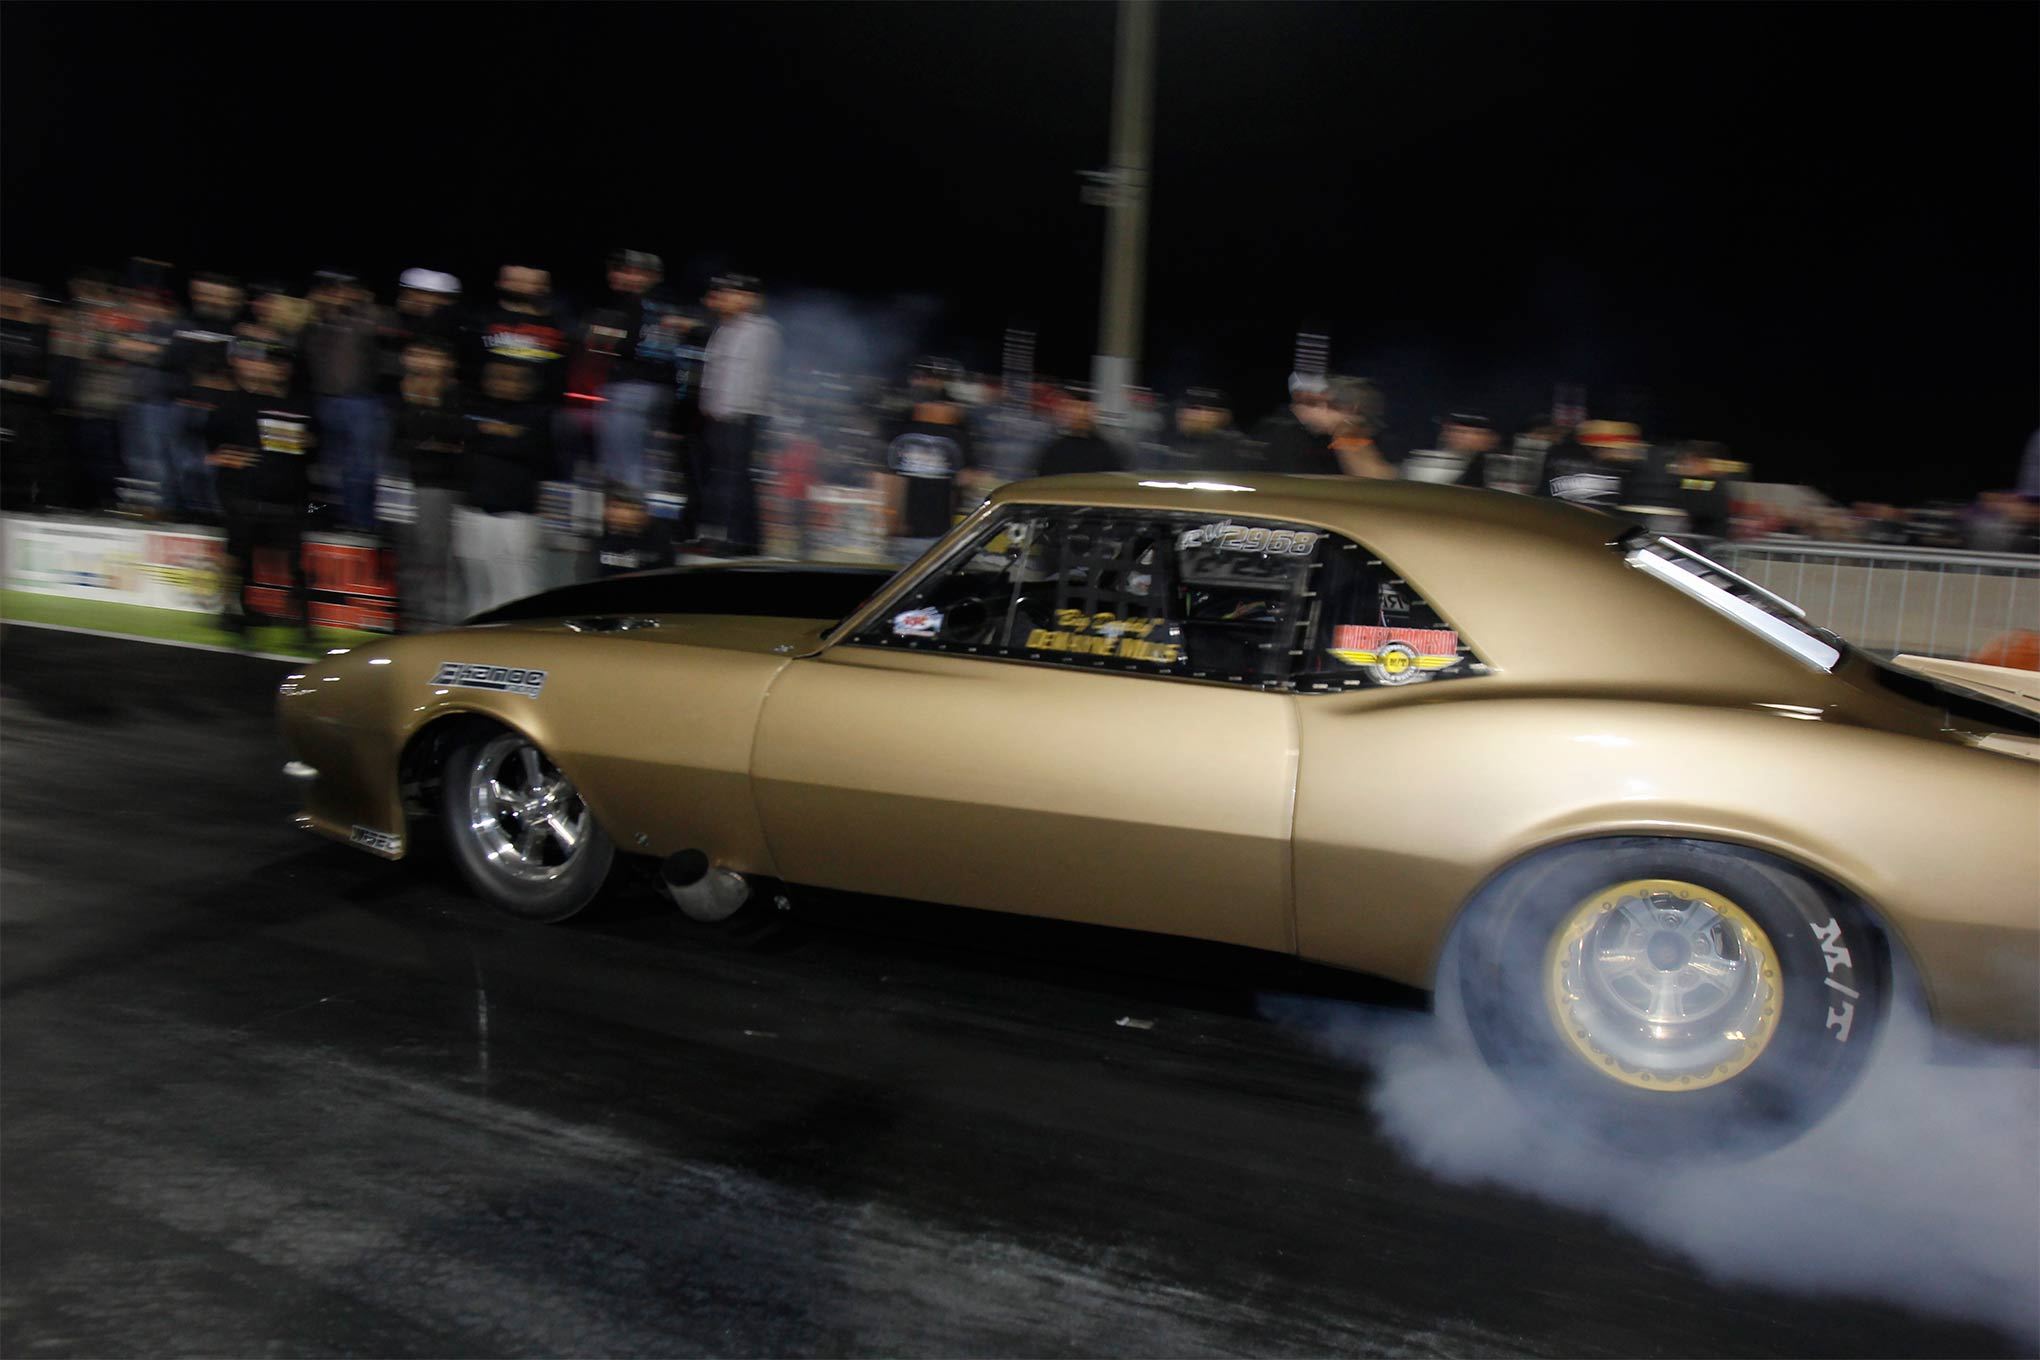 DeWayne Mills in his twin-turbo 1968 Camaro made the quickest pass of Thursday night's qualifying session. His 3.90 run was good enough for a No. 3 qualifying spot.